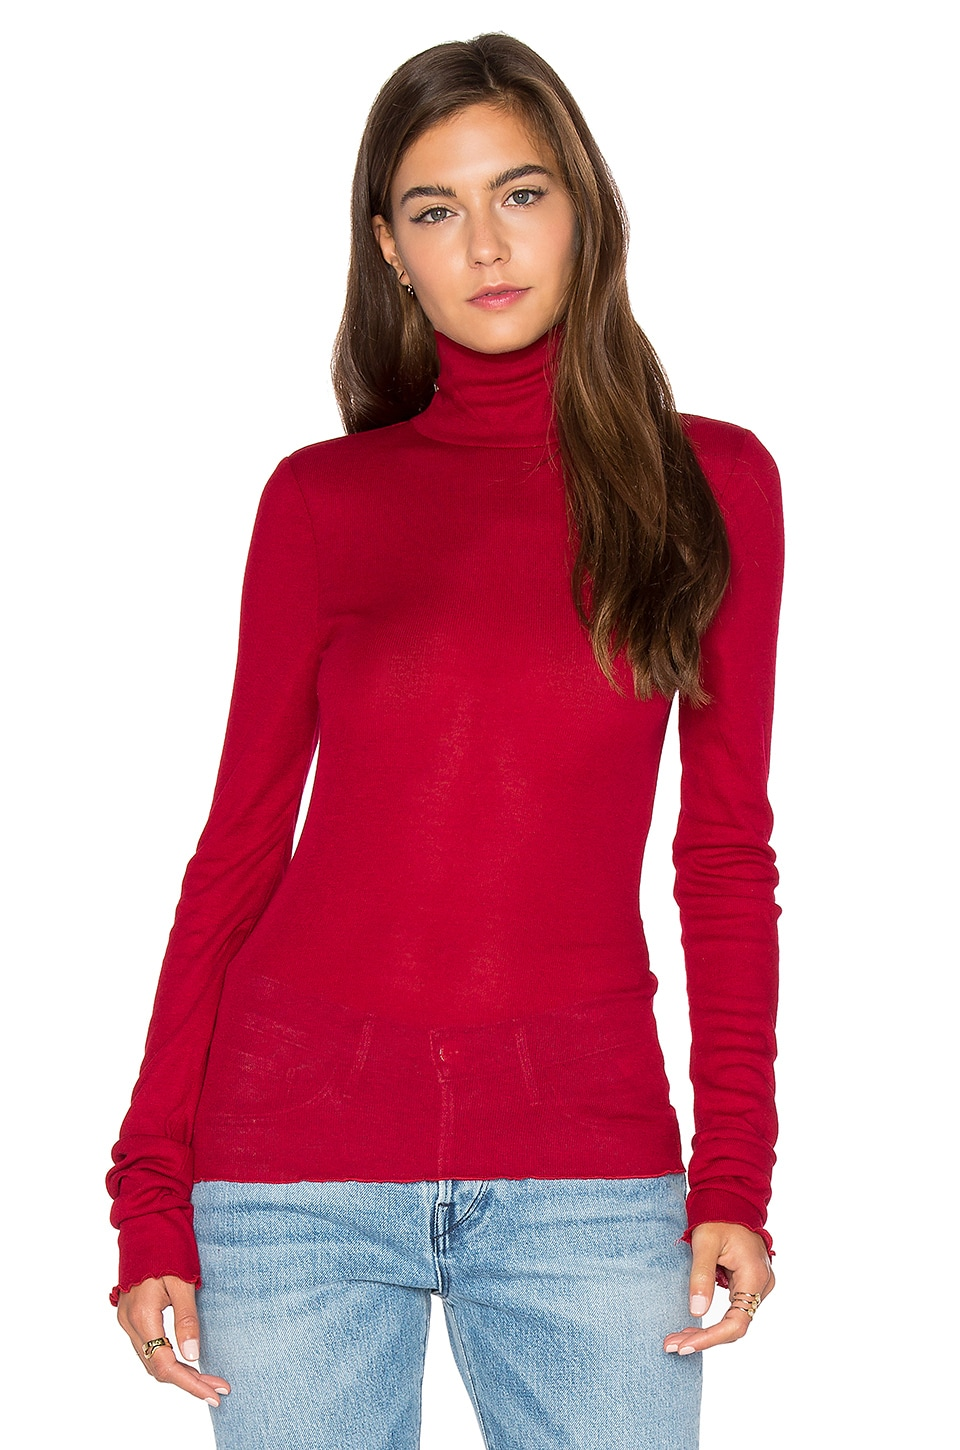 Free People Modern Cuff Layering Top in Red